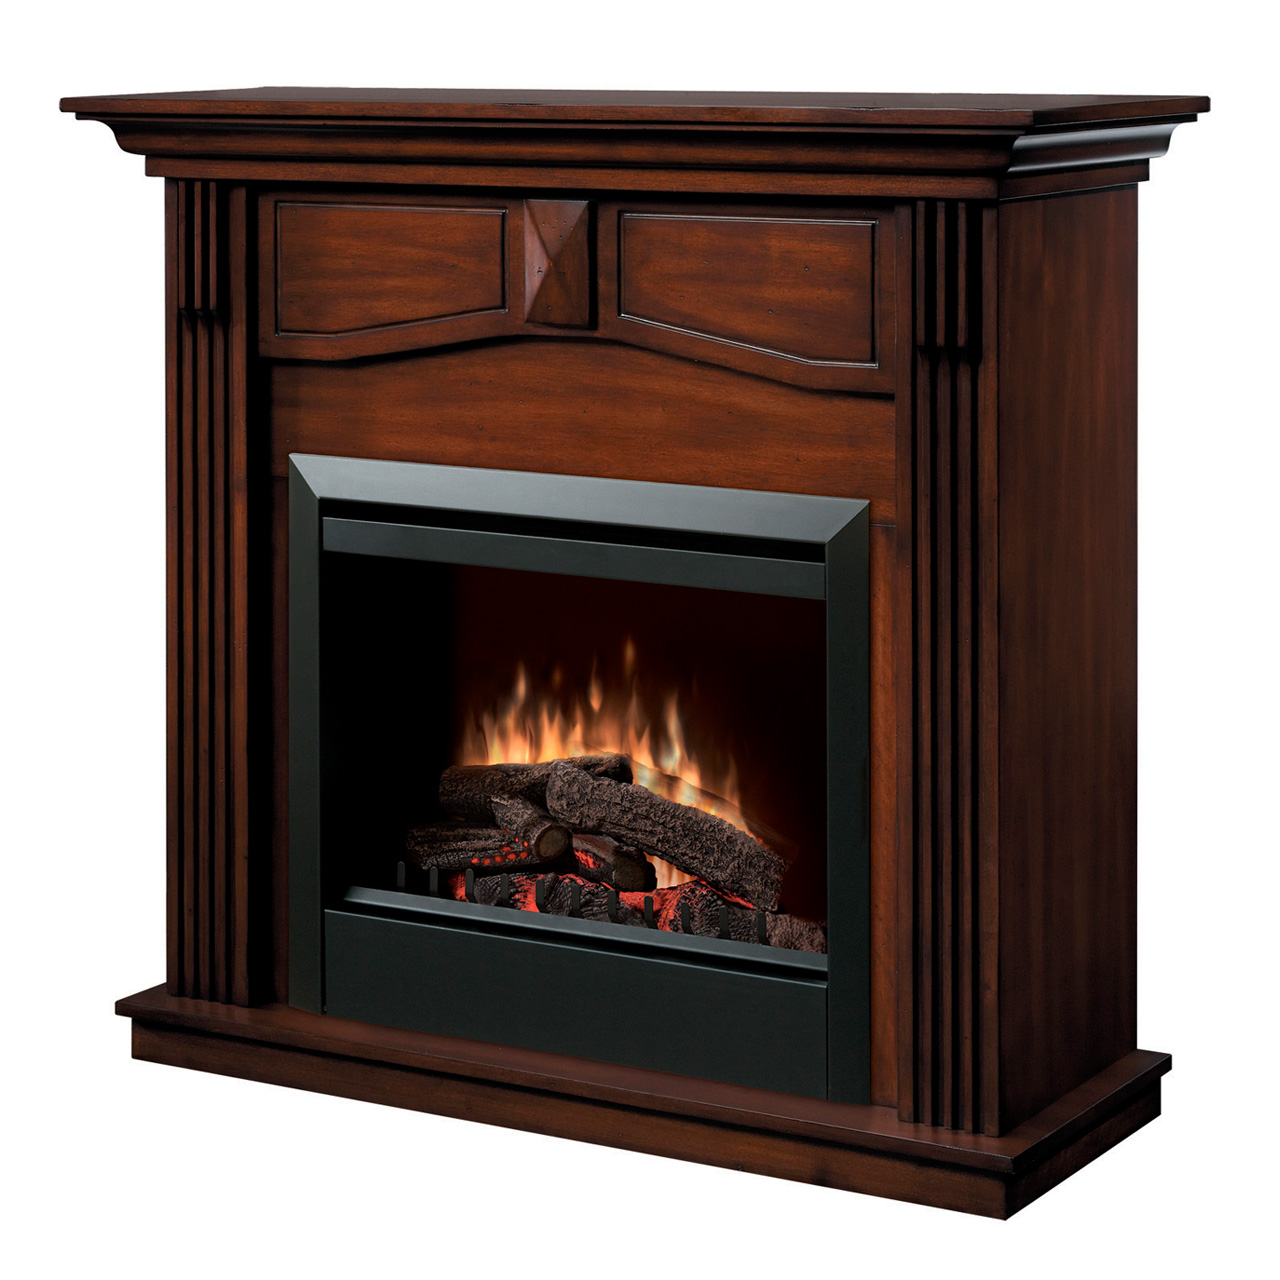 authorized dimplex electric fireplaces dealer in toronto the gta rh cozycomfortplus com